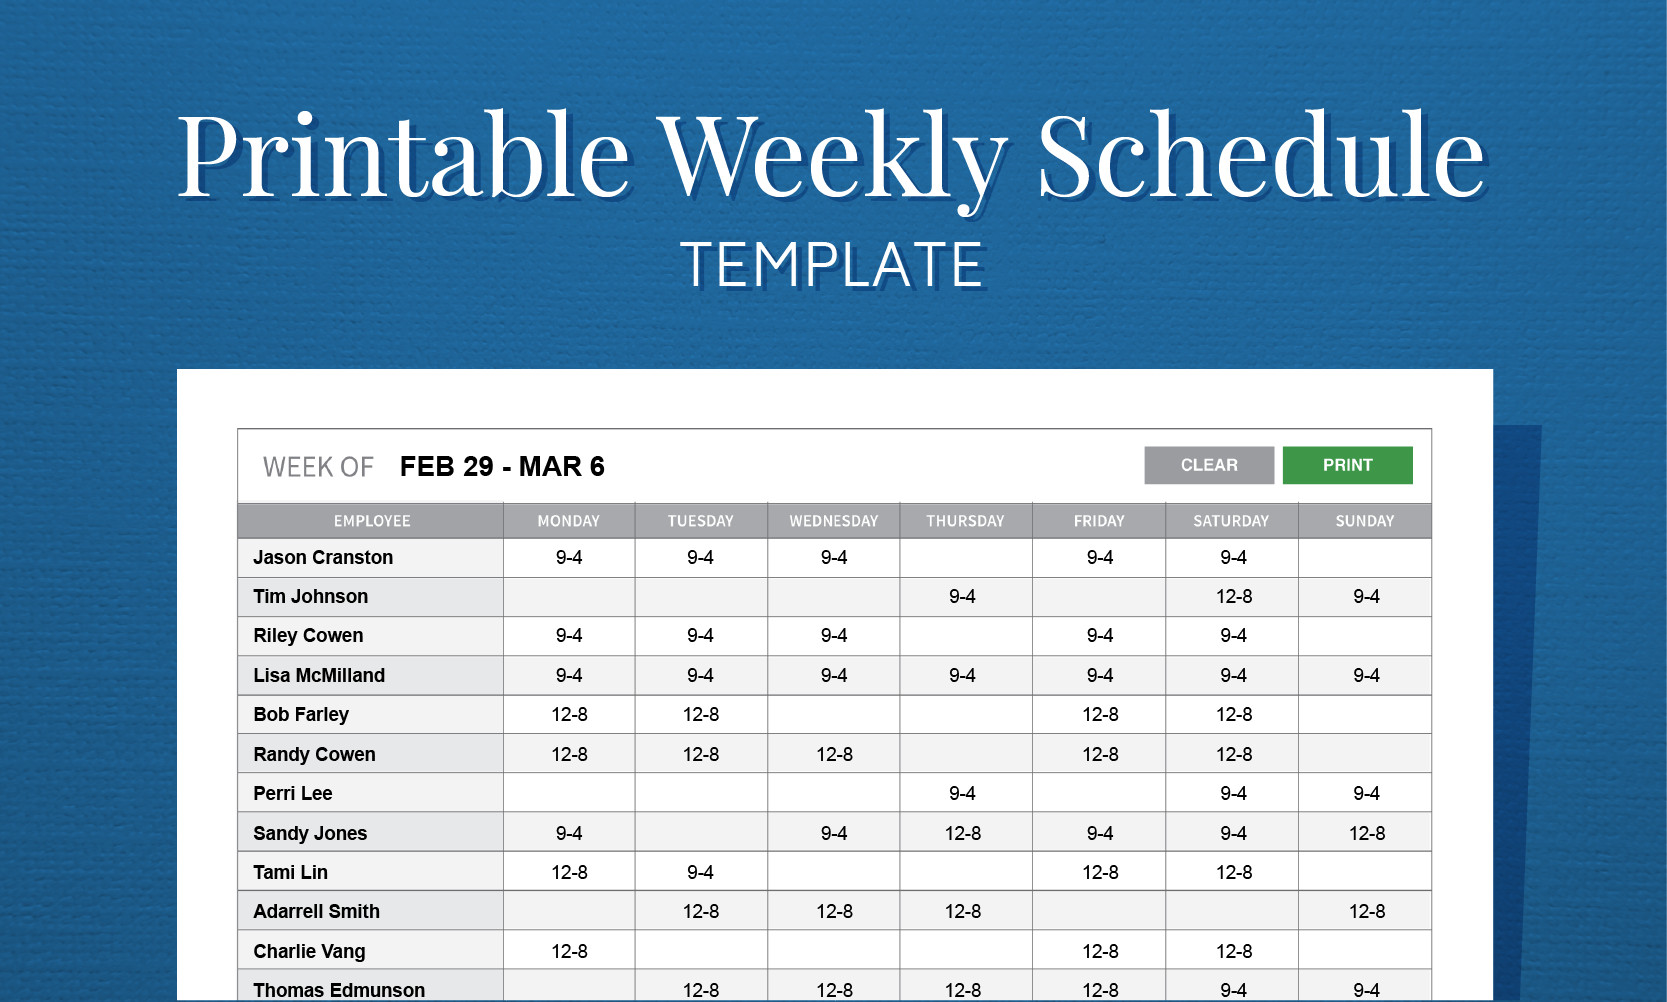 Printable Weekly Schedule Template Free Printable Weekly Work Schedule Template for Employee